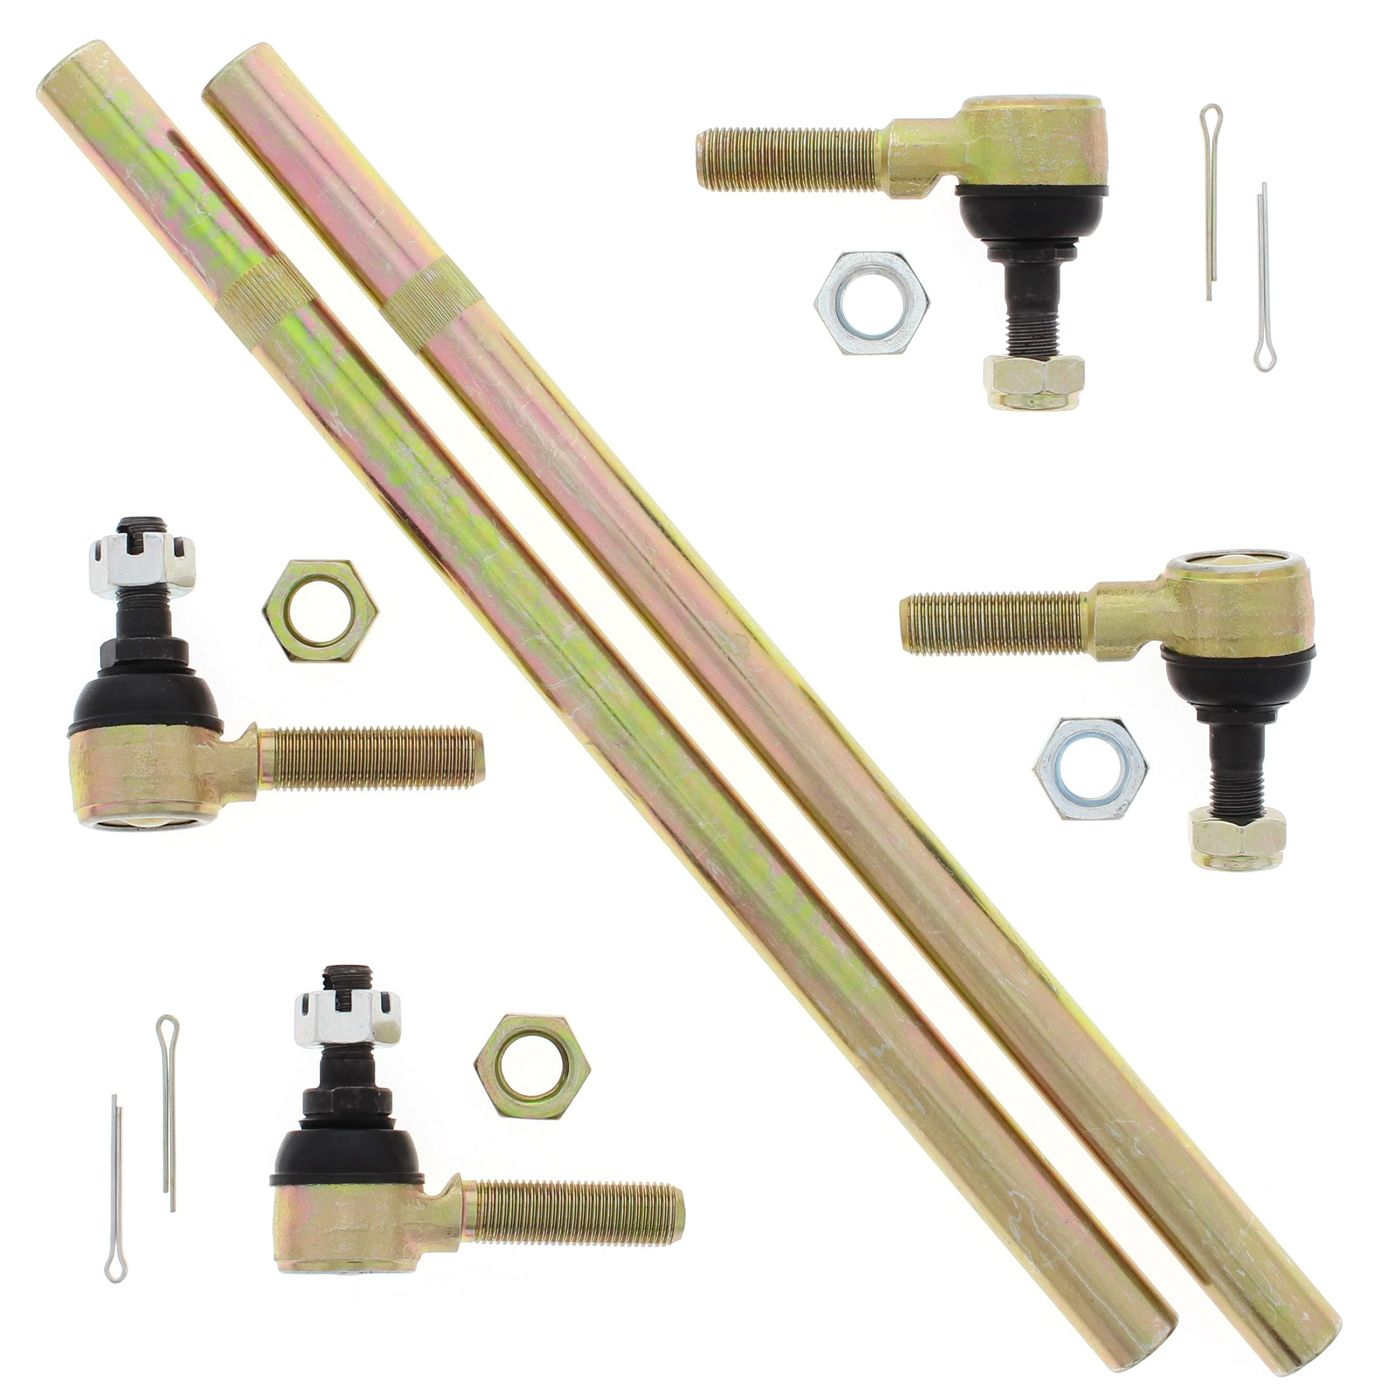 Wrp Tie Rod Kits - WRP521011 image